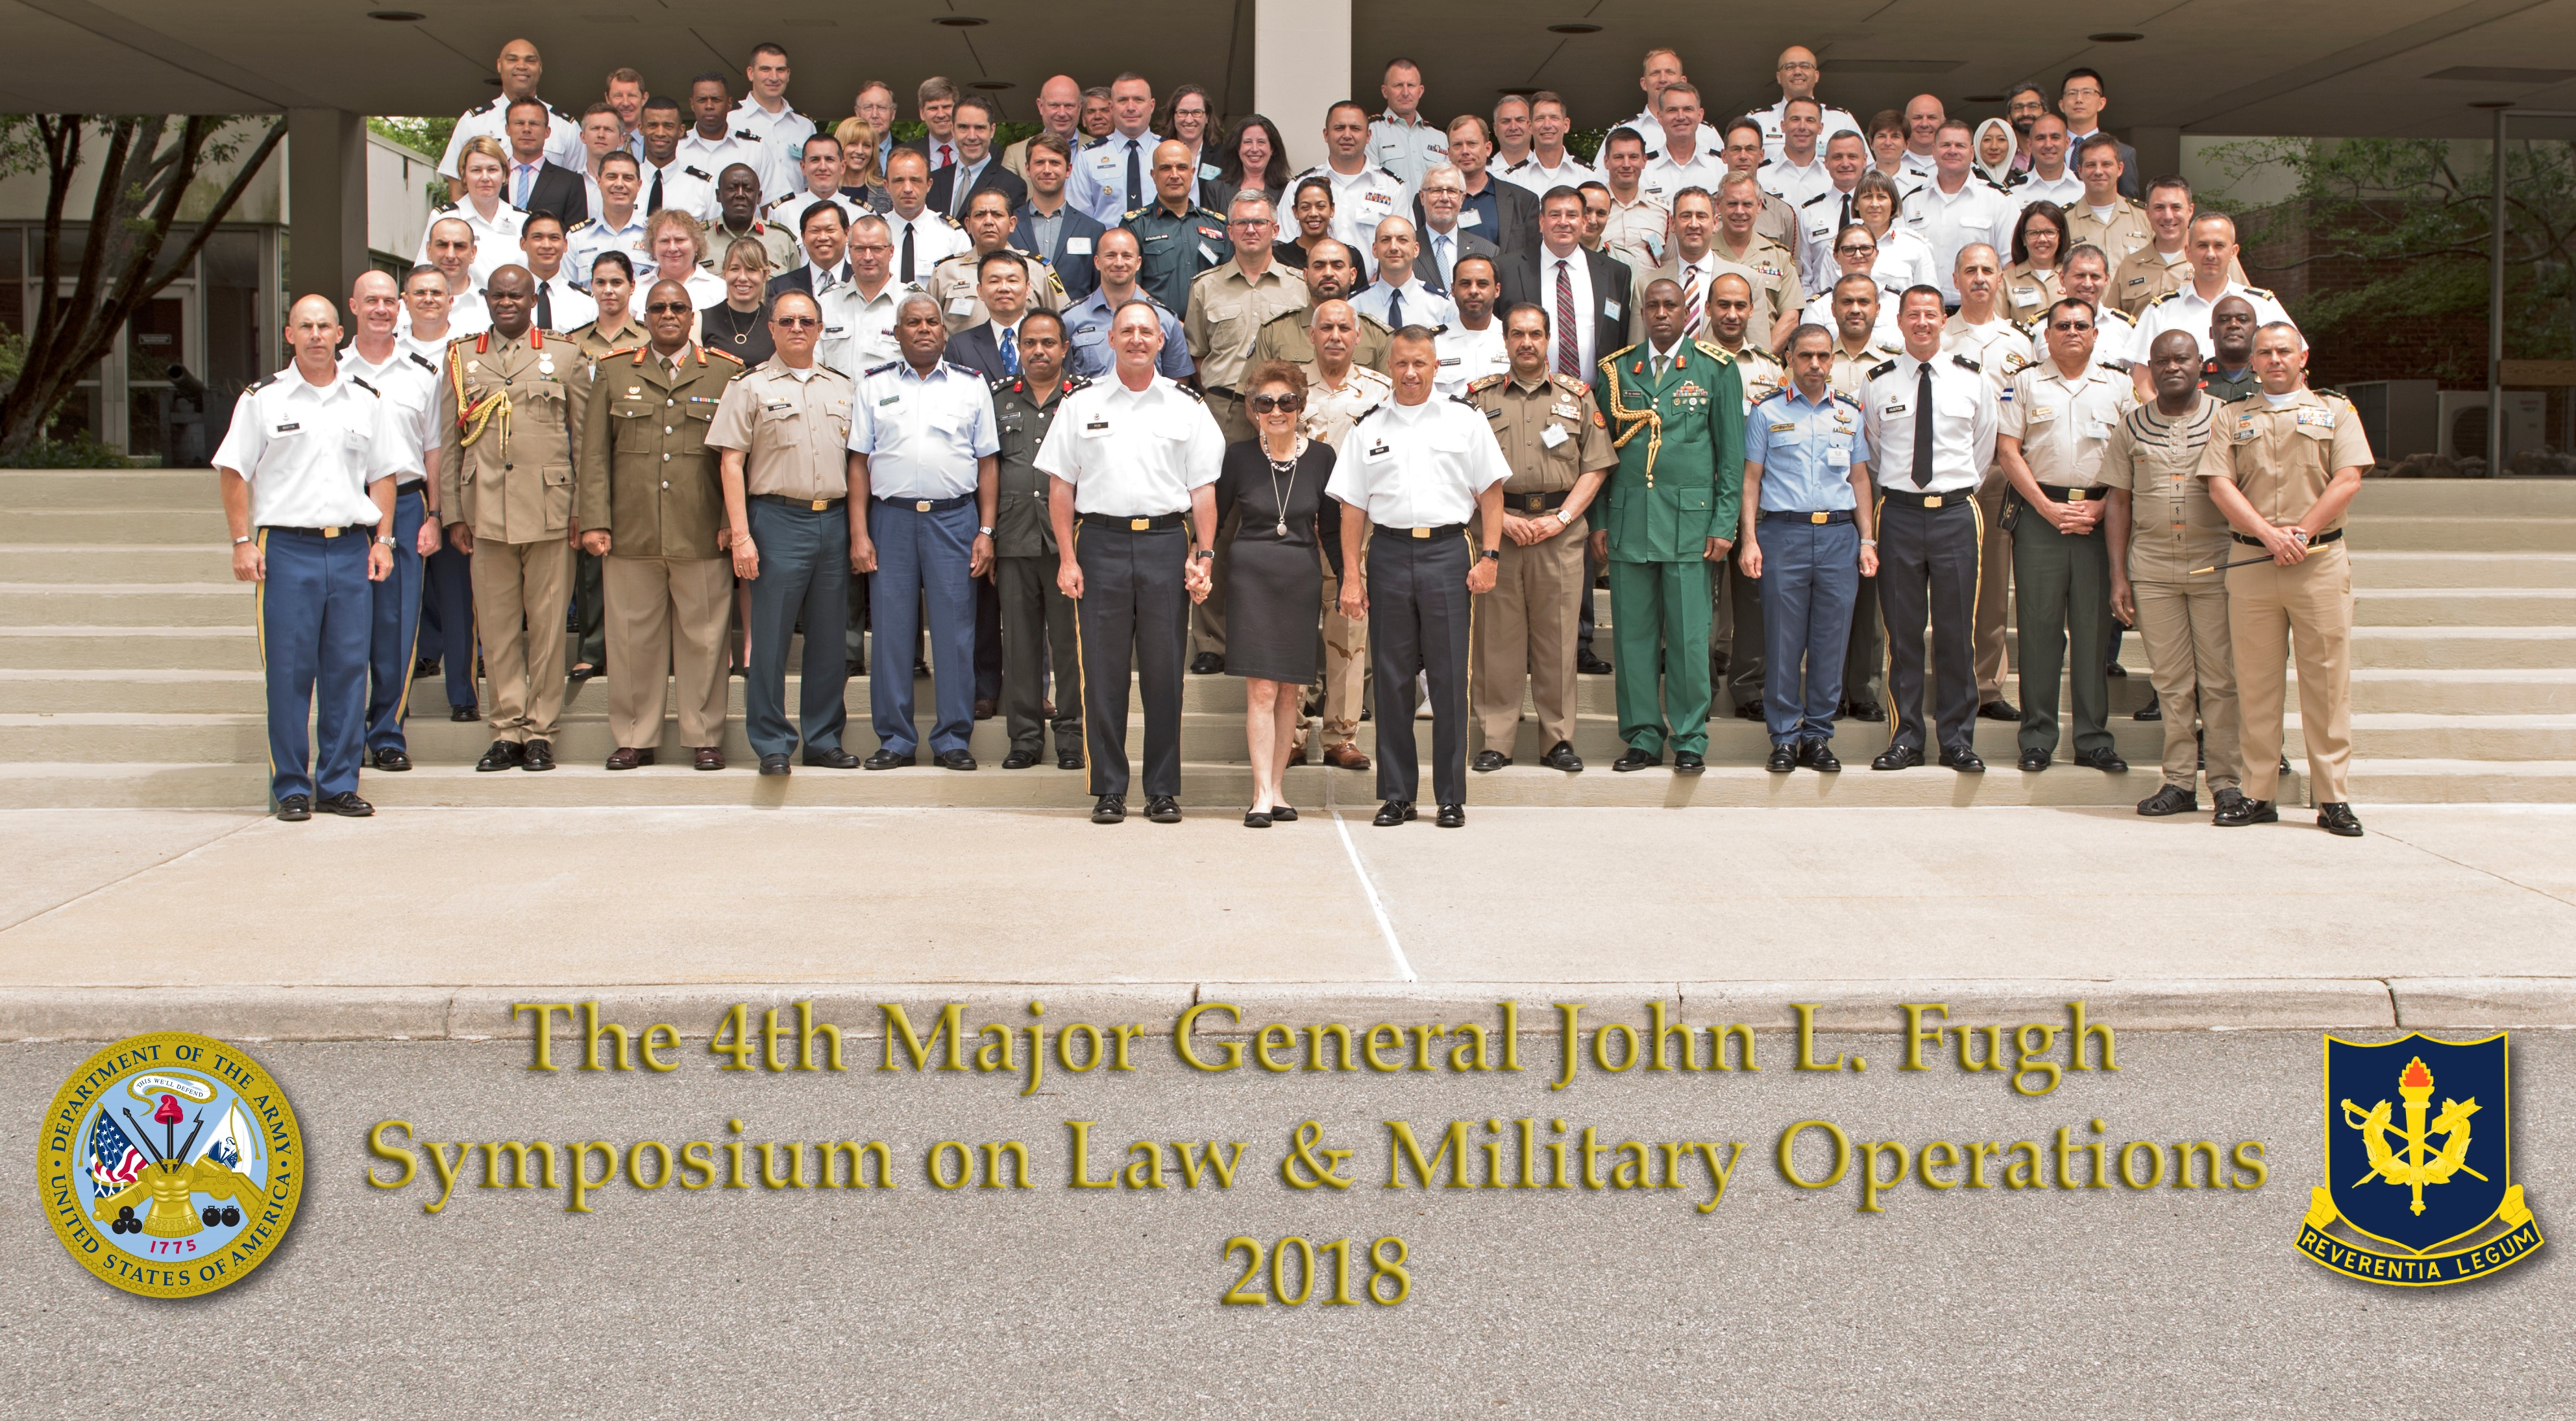 Military and academic legal experts from around the world were invited to discuss issues in the law of armed conflict at the 4th annual Maj. Gen. John L. Fugh and Multinational Interoperability Symposium, conducted at The Judge Advocate General Legal Center and School in Charlottesville, Va., May 28-29, 2018. Center is Ms. June Chung, Maj. Gen. Fugh's widow; on Ms. Chung's left is Lt. Gen. Charles N. Pede, The Judge Advocate General, U.S. Army; on Ms. Chung's right is Maj. Gen. Stuart W. Risch, The Deputy Judge Advocate General, U.S. Army. (Photo by Aliza Reisberg, The Judge Advocate General's Legal Center and School (TJAGLCS))